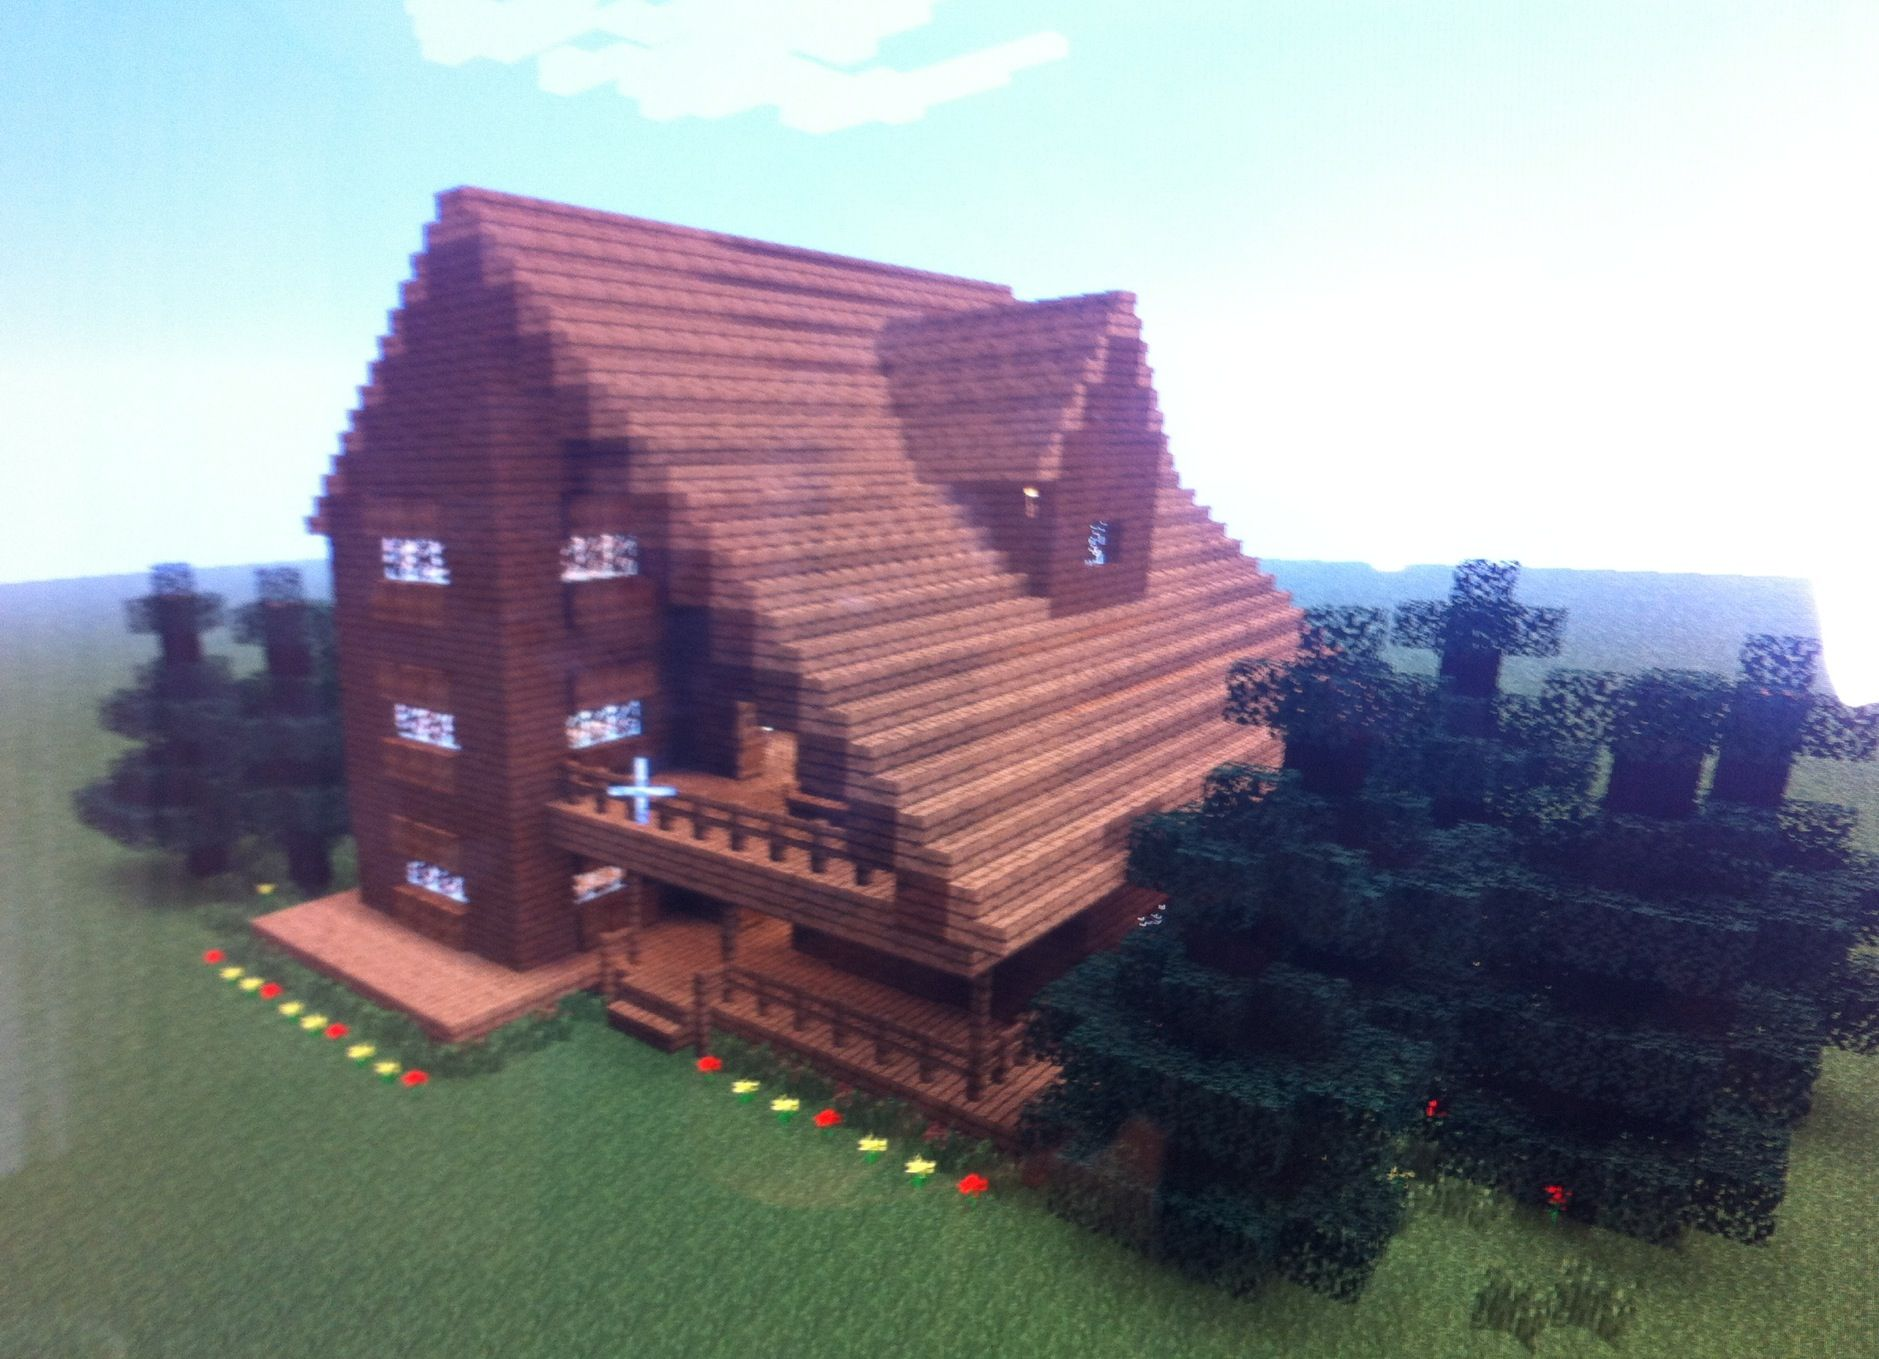 This House Is A Cabin Or Big Cottage Minecraft Houses